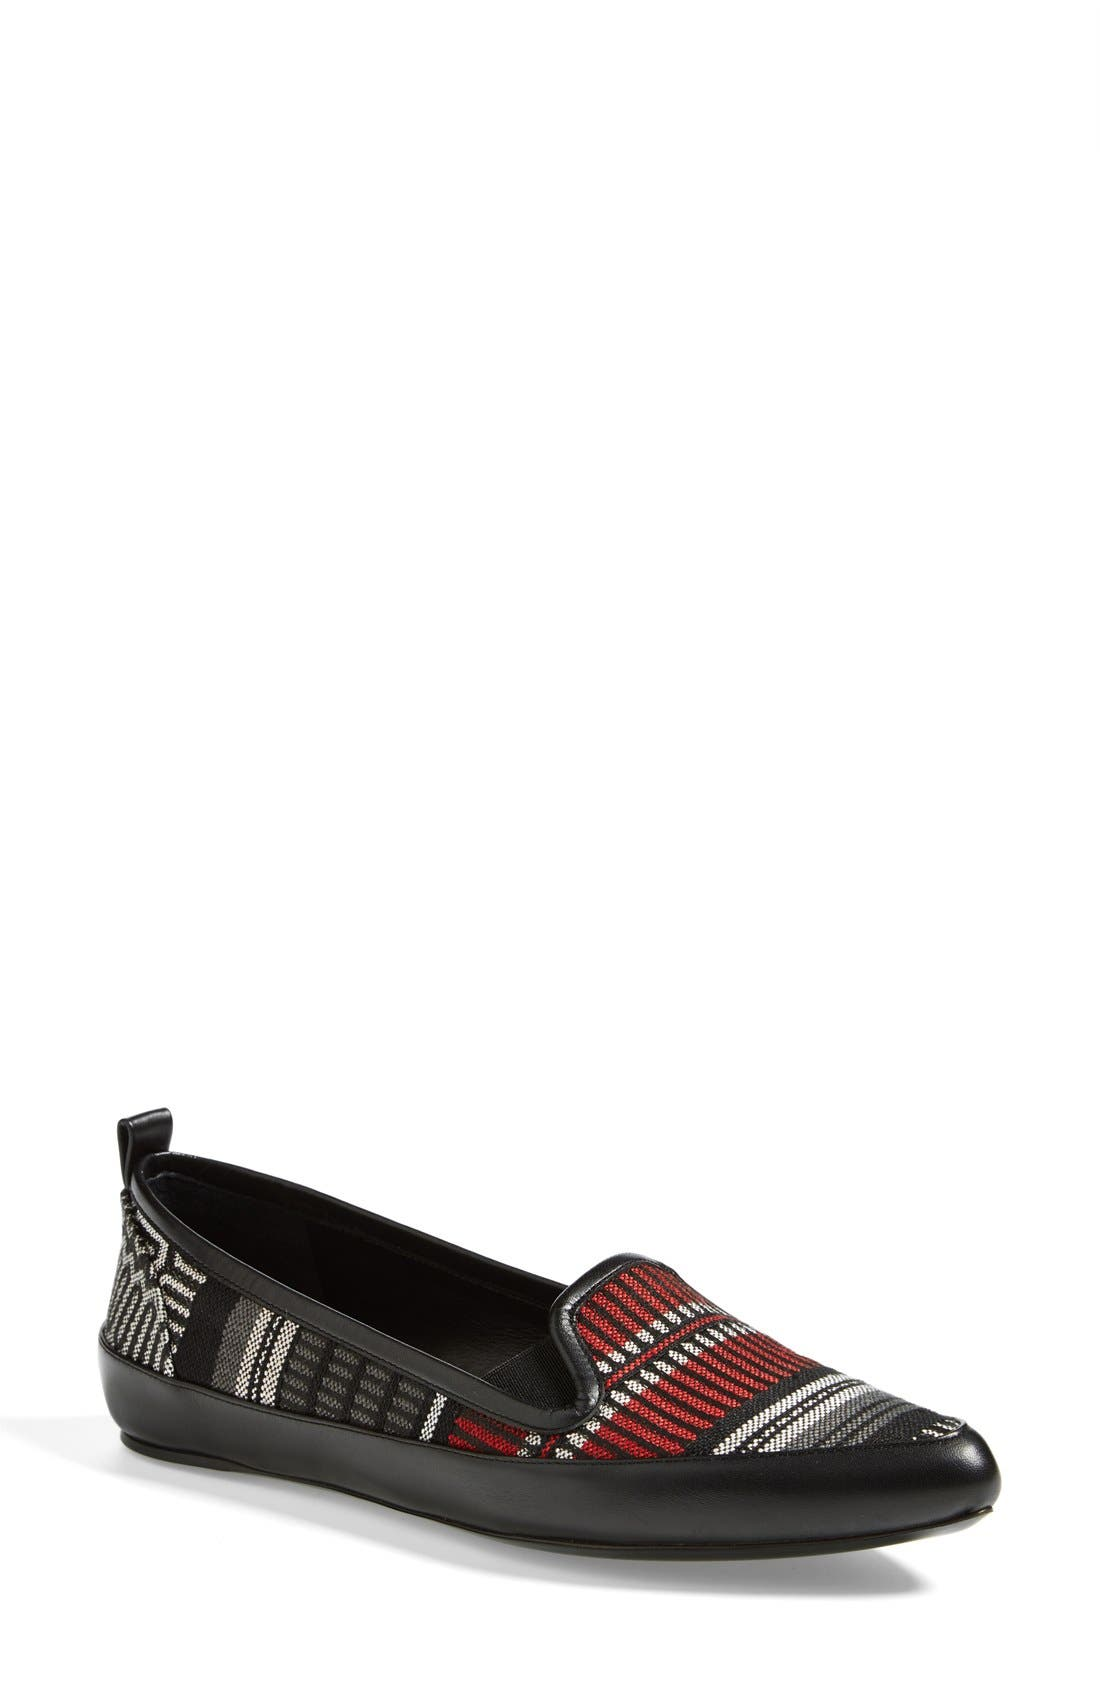 Main Image - Proenza Schouler Pointy Toe Moccasin